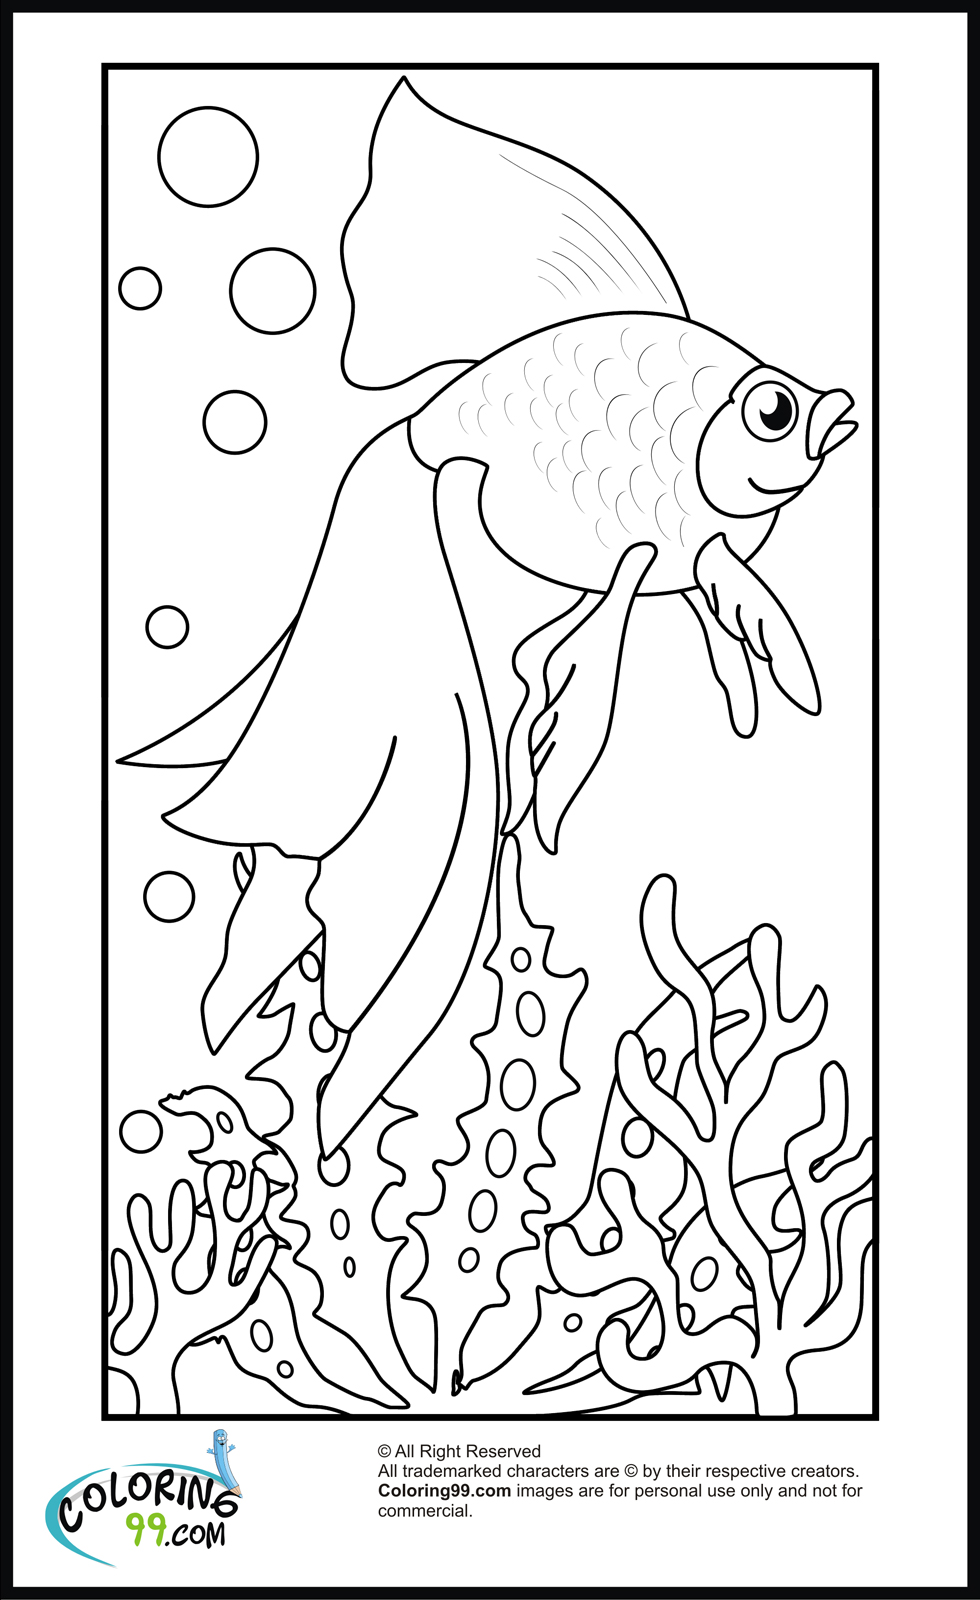 coloring sheets free online free printable mandalas for kids best coloring pages for sheets free online coloring